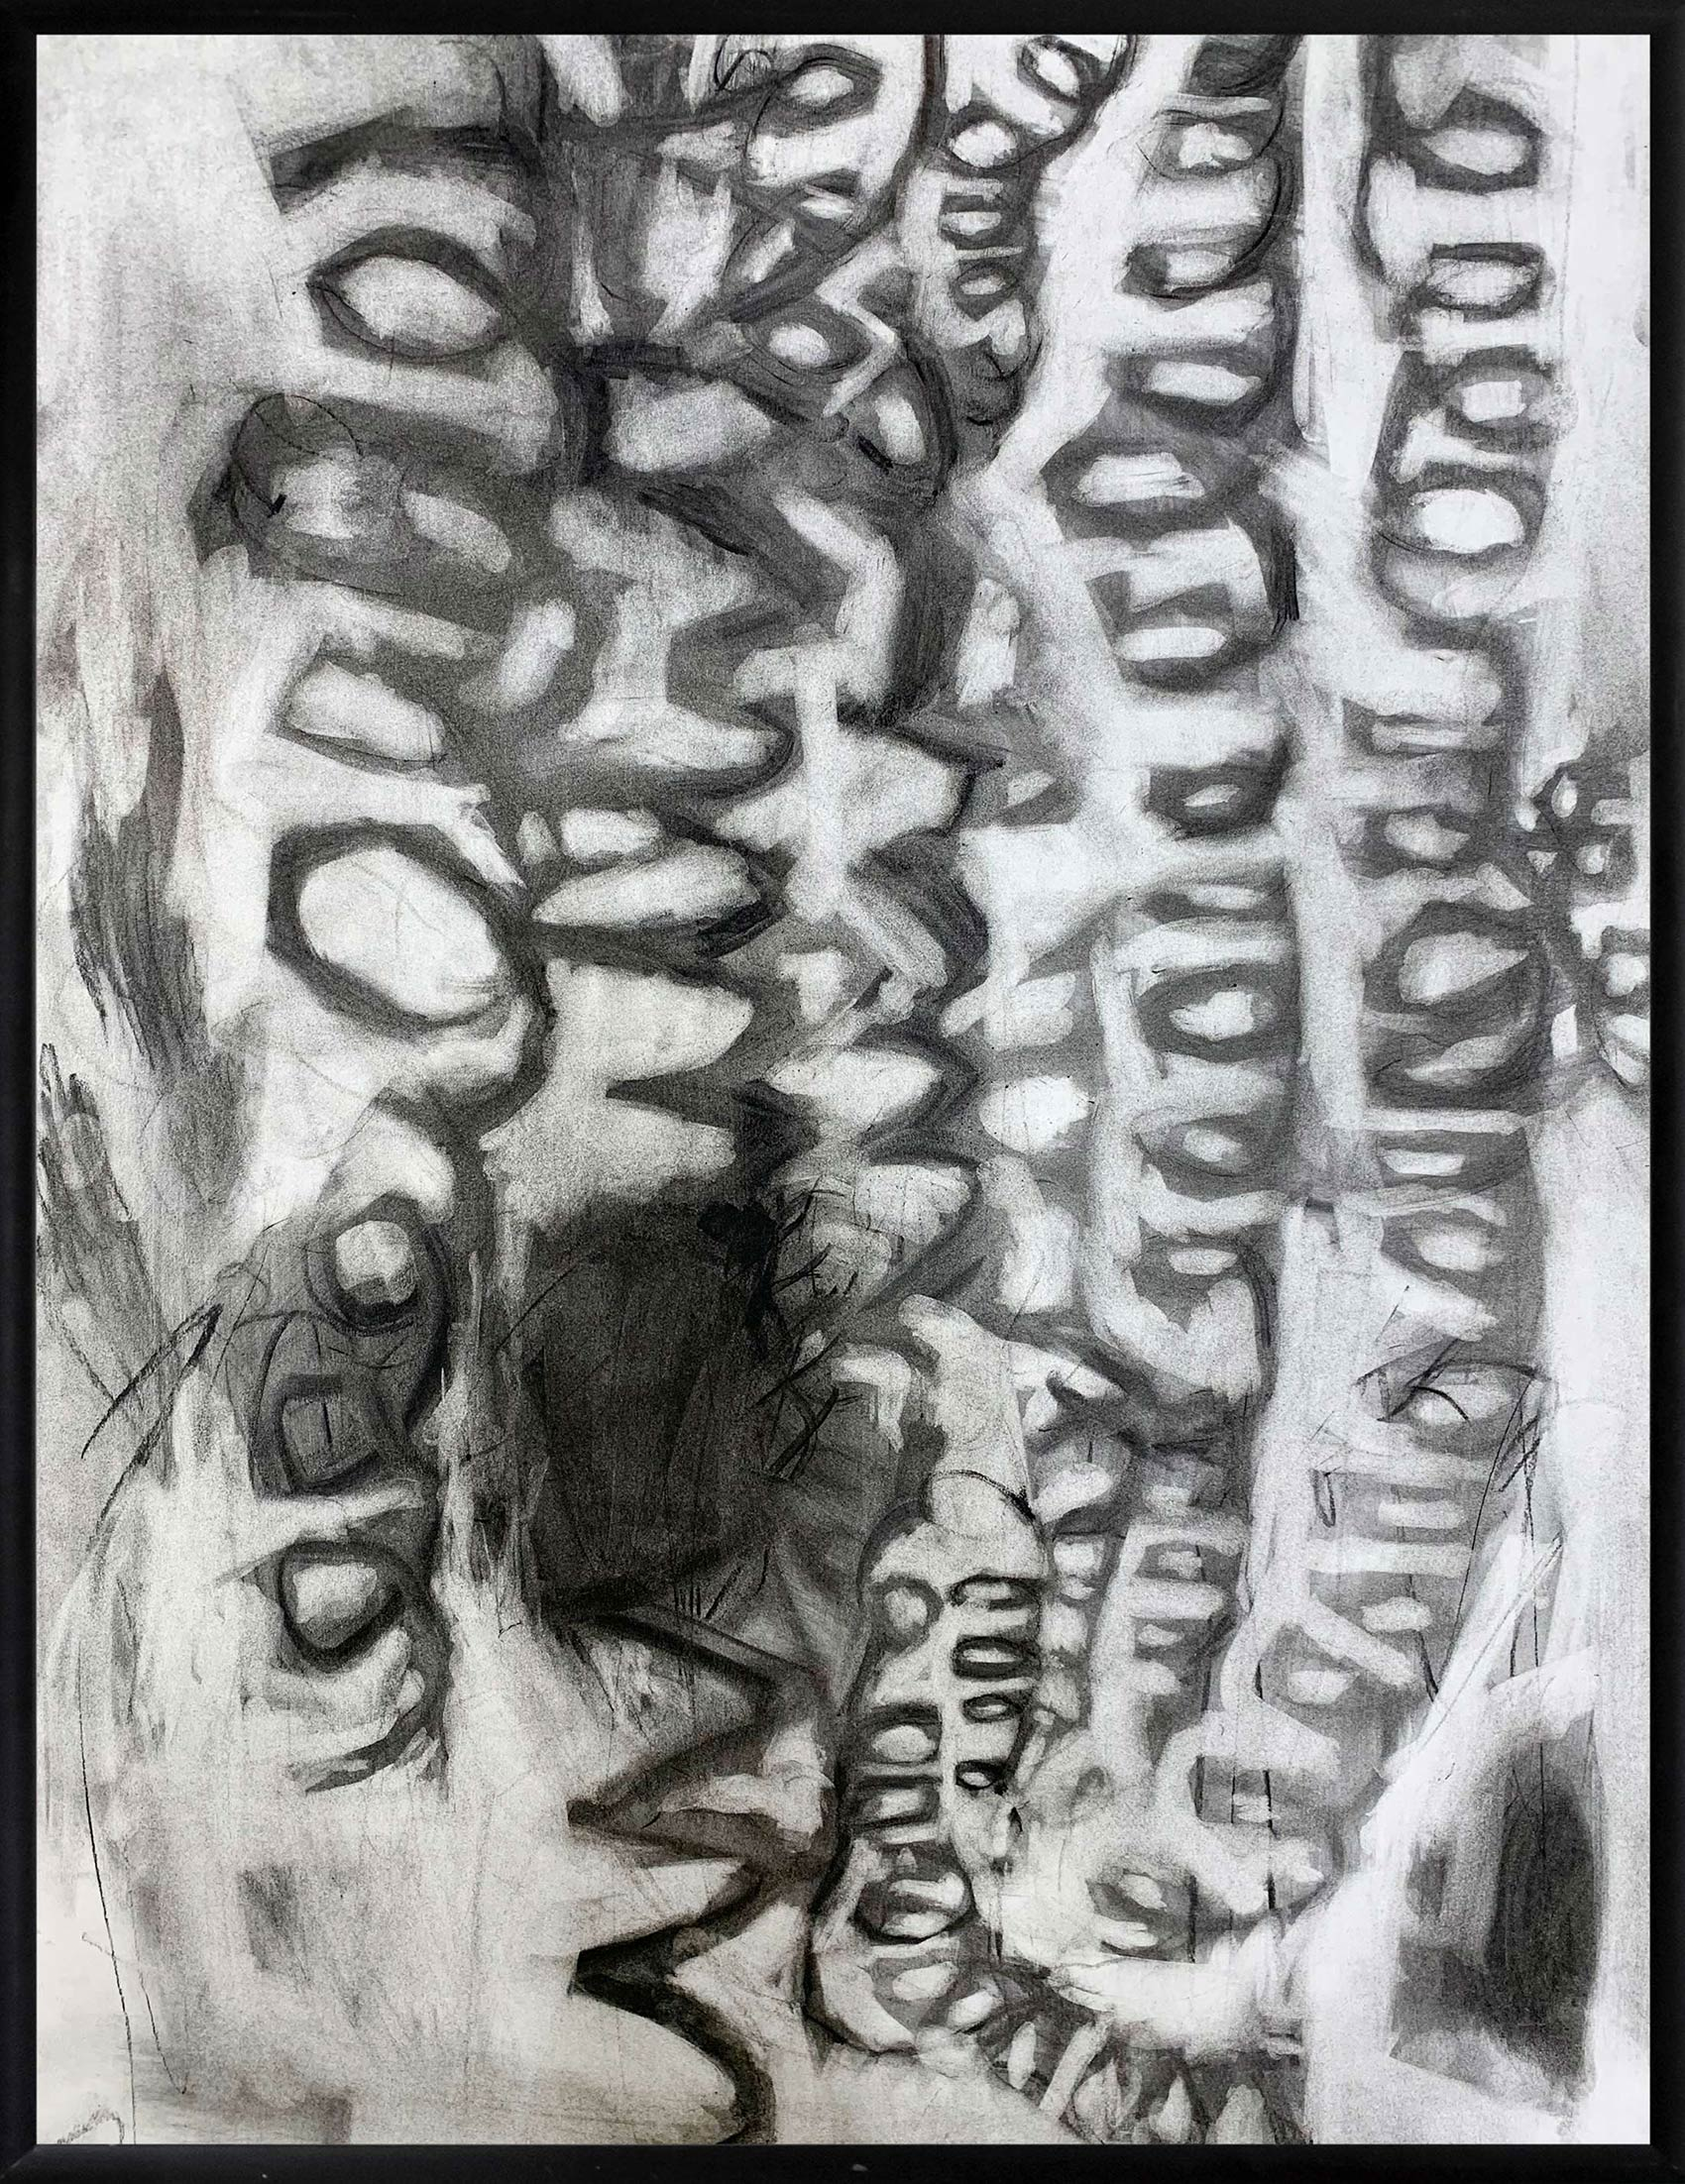 pencil drawing, art student, monocrome, art, emerging, collect and buy art, charcoal on paper